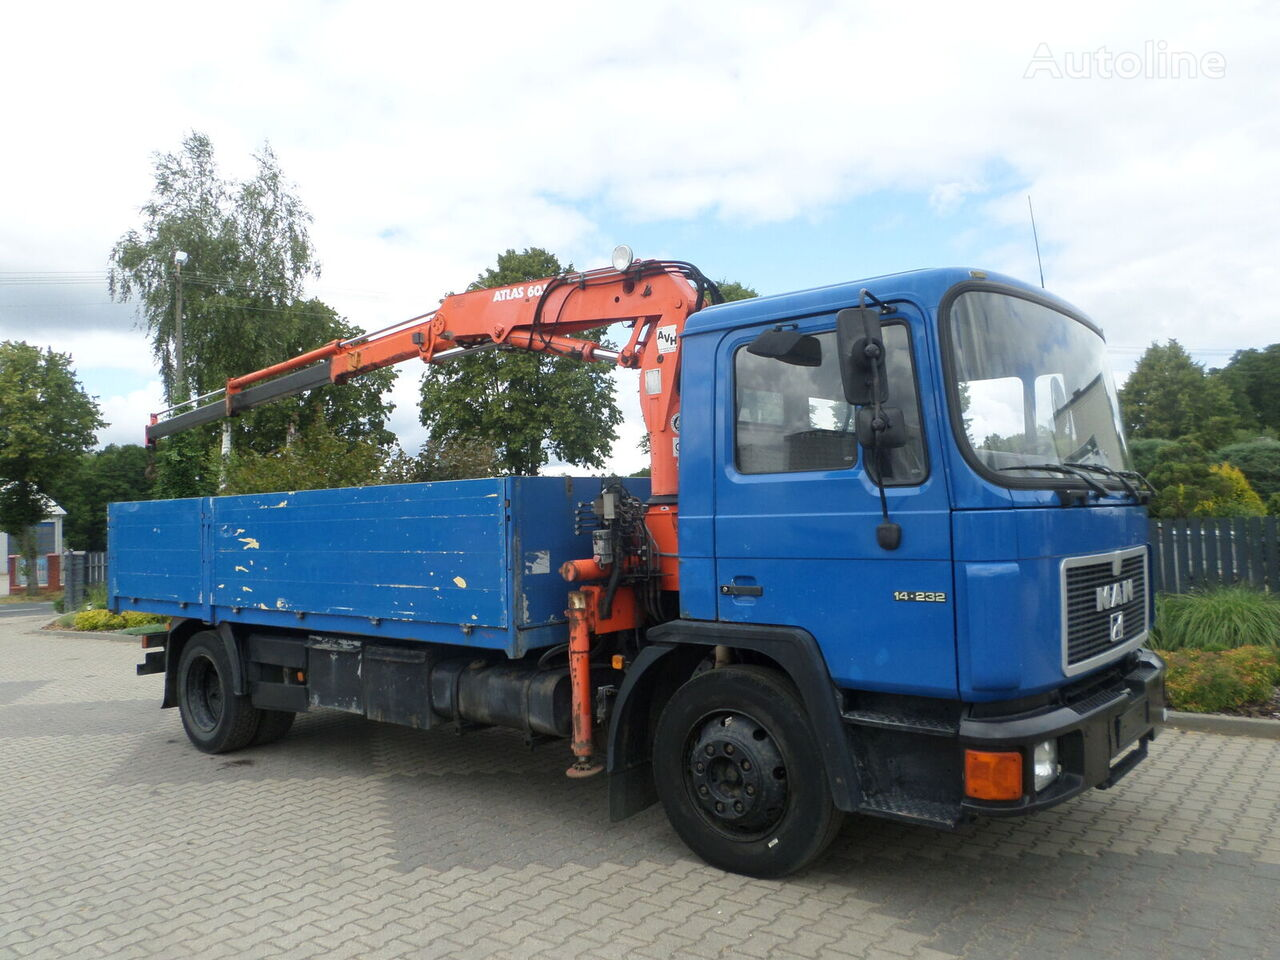 MAN 14.232 flatbed truck